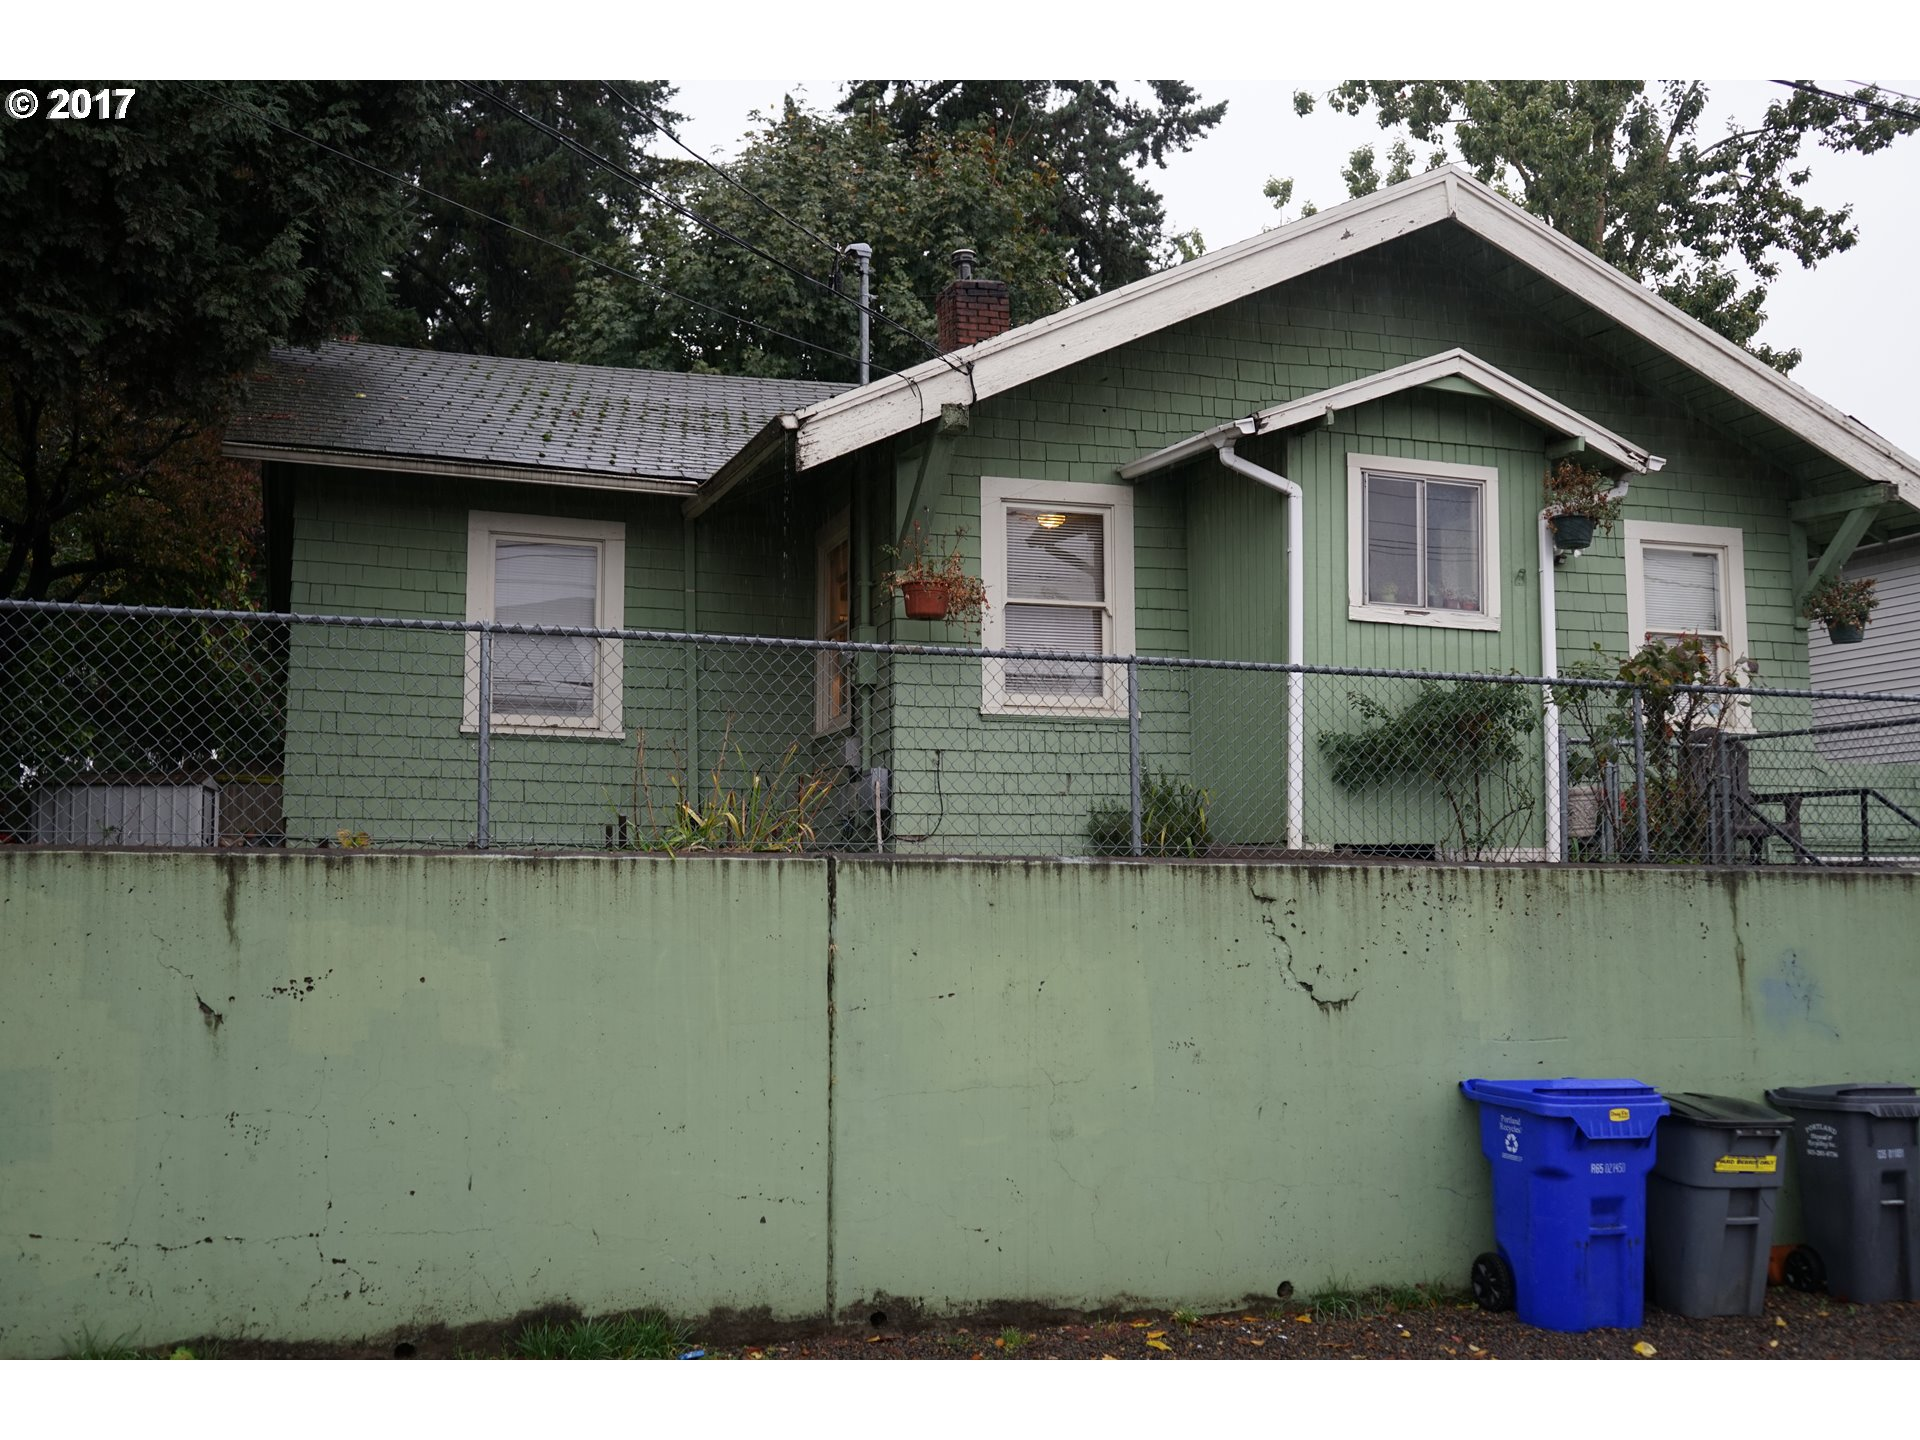 "Priced to sell! One story fixer home with basement built in 1913. Home has attached garage & additional bonus rooms. County states sqft at 1136 buyers to verify & due their own due diligence. Easy access to I-205 & close to PDX airport. Property is being sold ""as-is"". Buyers to supply proof of funds or pre-approval letter attached with offer. Zoned RS. Cash offers are recommended."